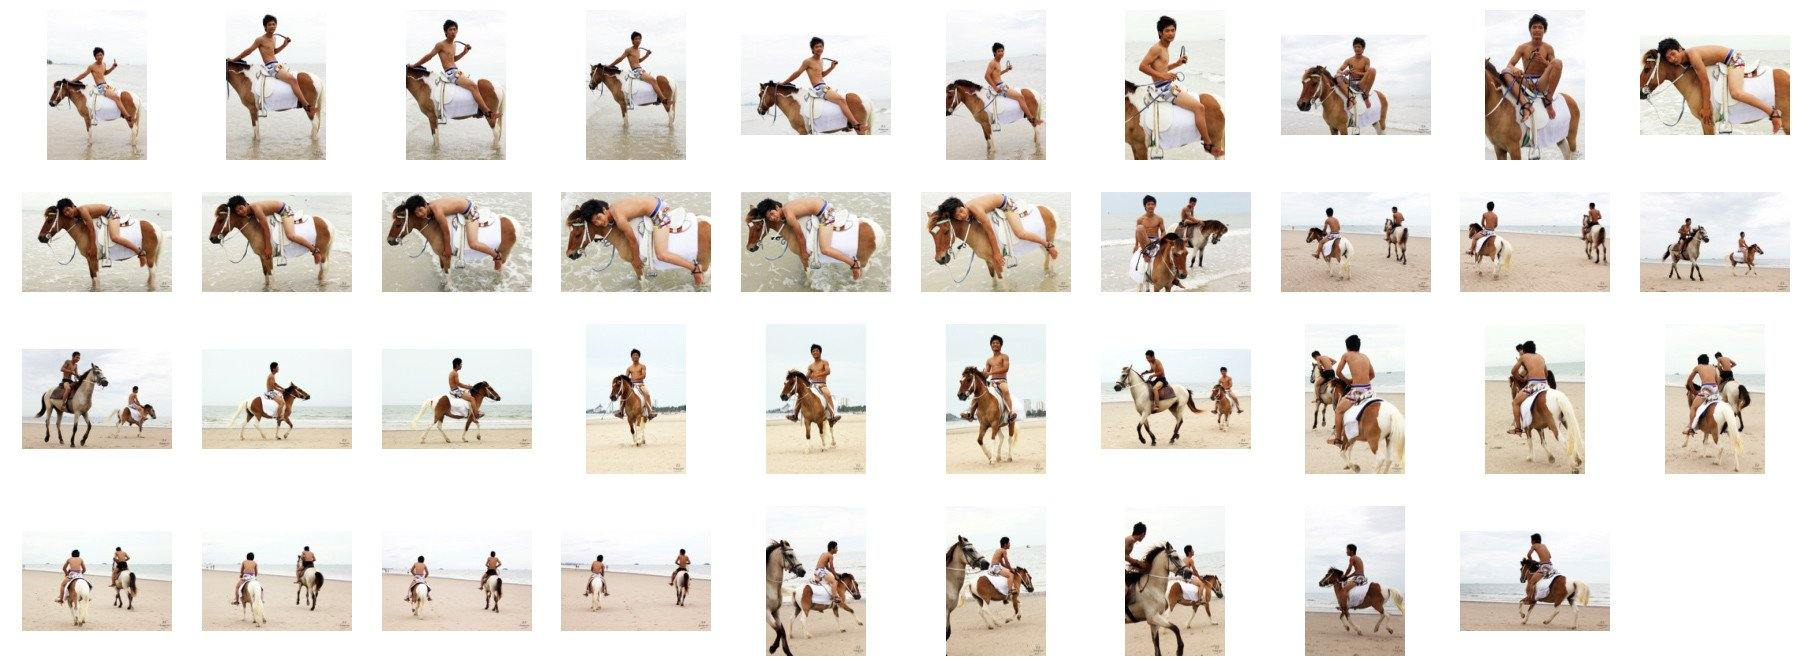 David in Funny Shorts Riding with Saddle on Brown-White Pony, Part 5 - Riding.Vision